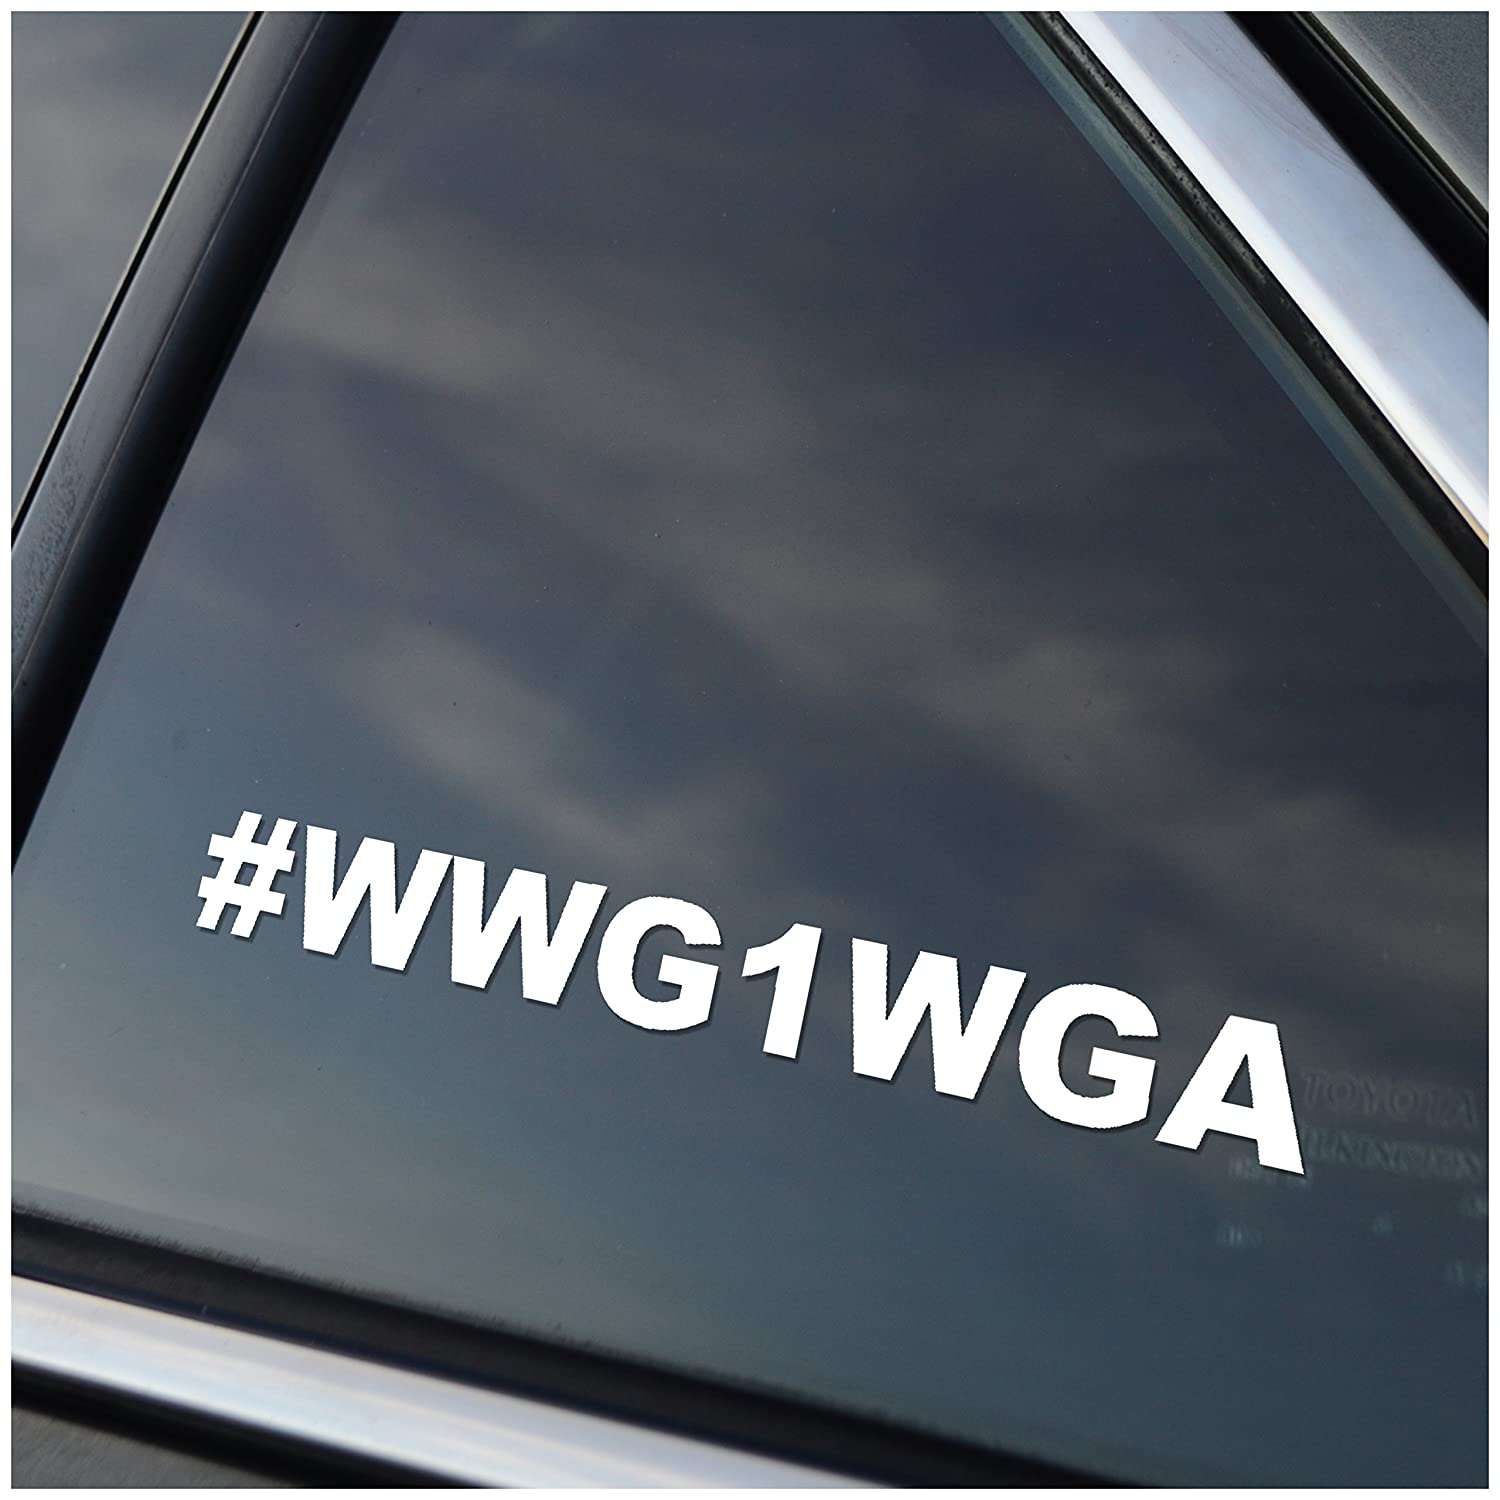 WWG1WGA Vinyl Car Window Decal Sticker White Gourmet Poultry Products of Oklahoma Inc